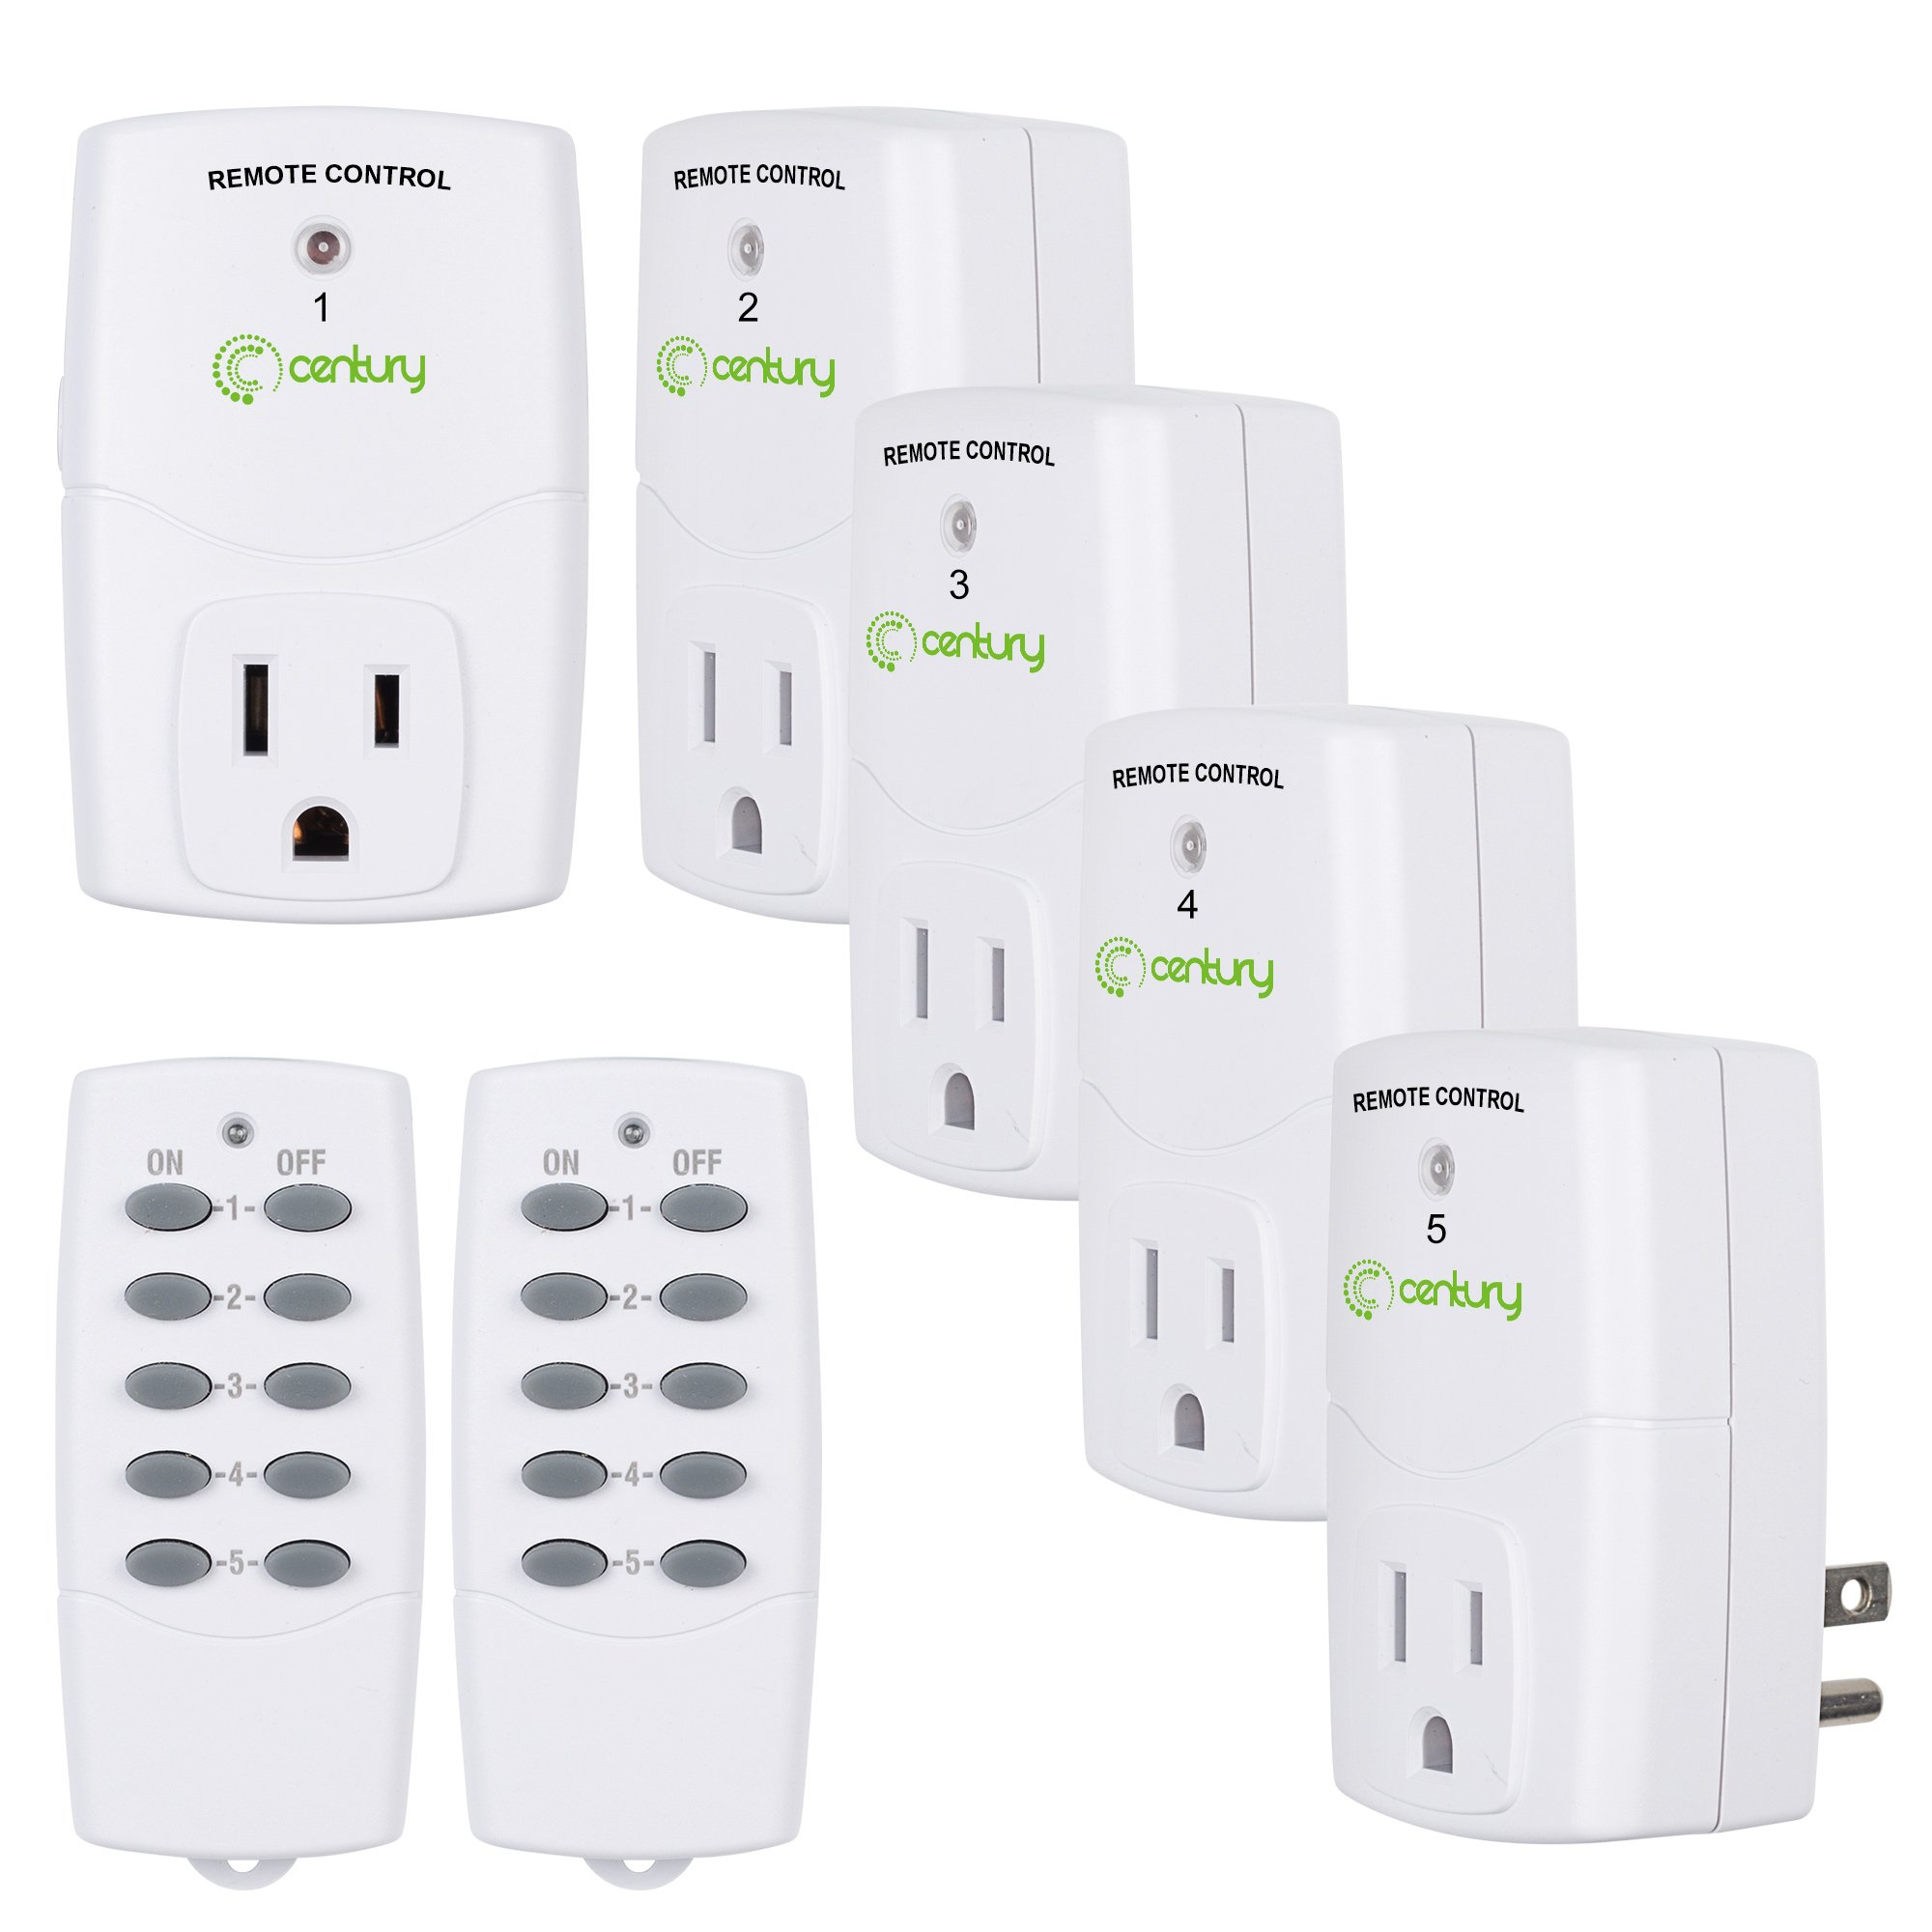 Century Mini Wireless Remote Control Outlet Switch Power Plug In for Household Appliances, Wireless Remote Light Switch, LED Light Bulbs, White (2 Remotes + 5 Outlets) Value Pack